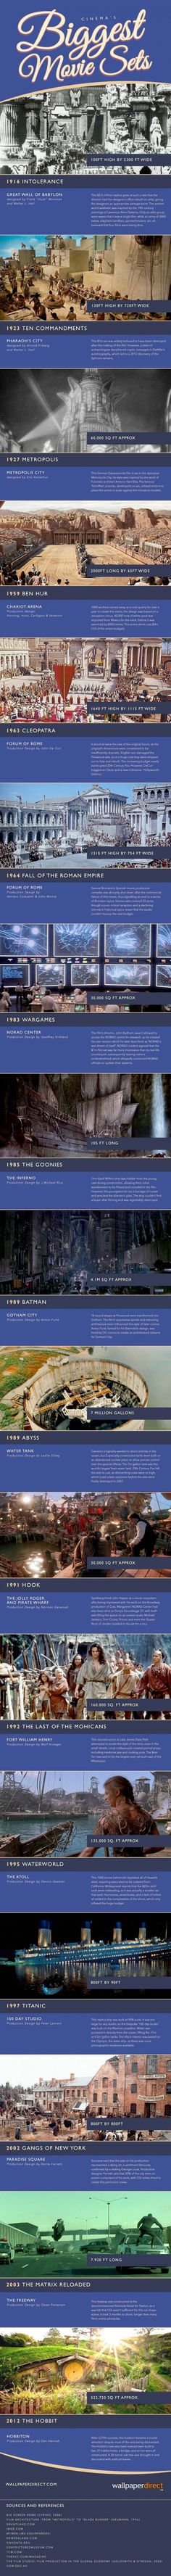 The biggest film sets of all time. - Imgur